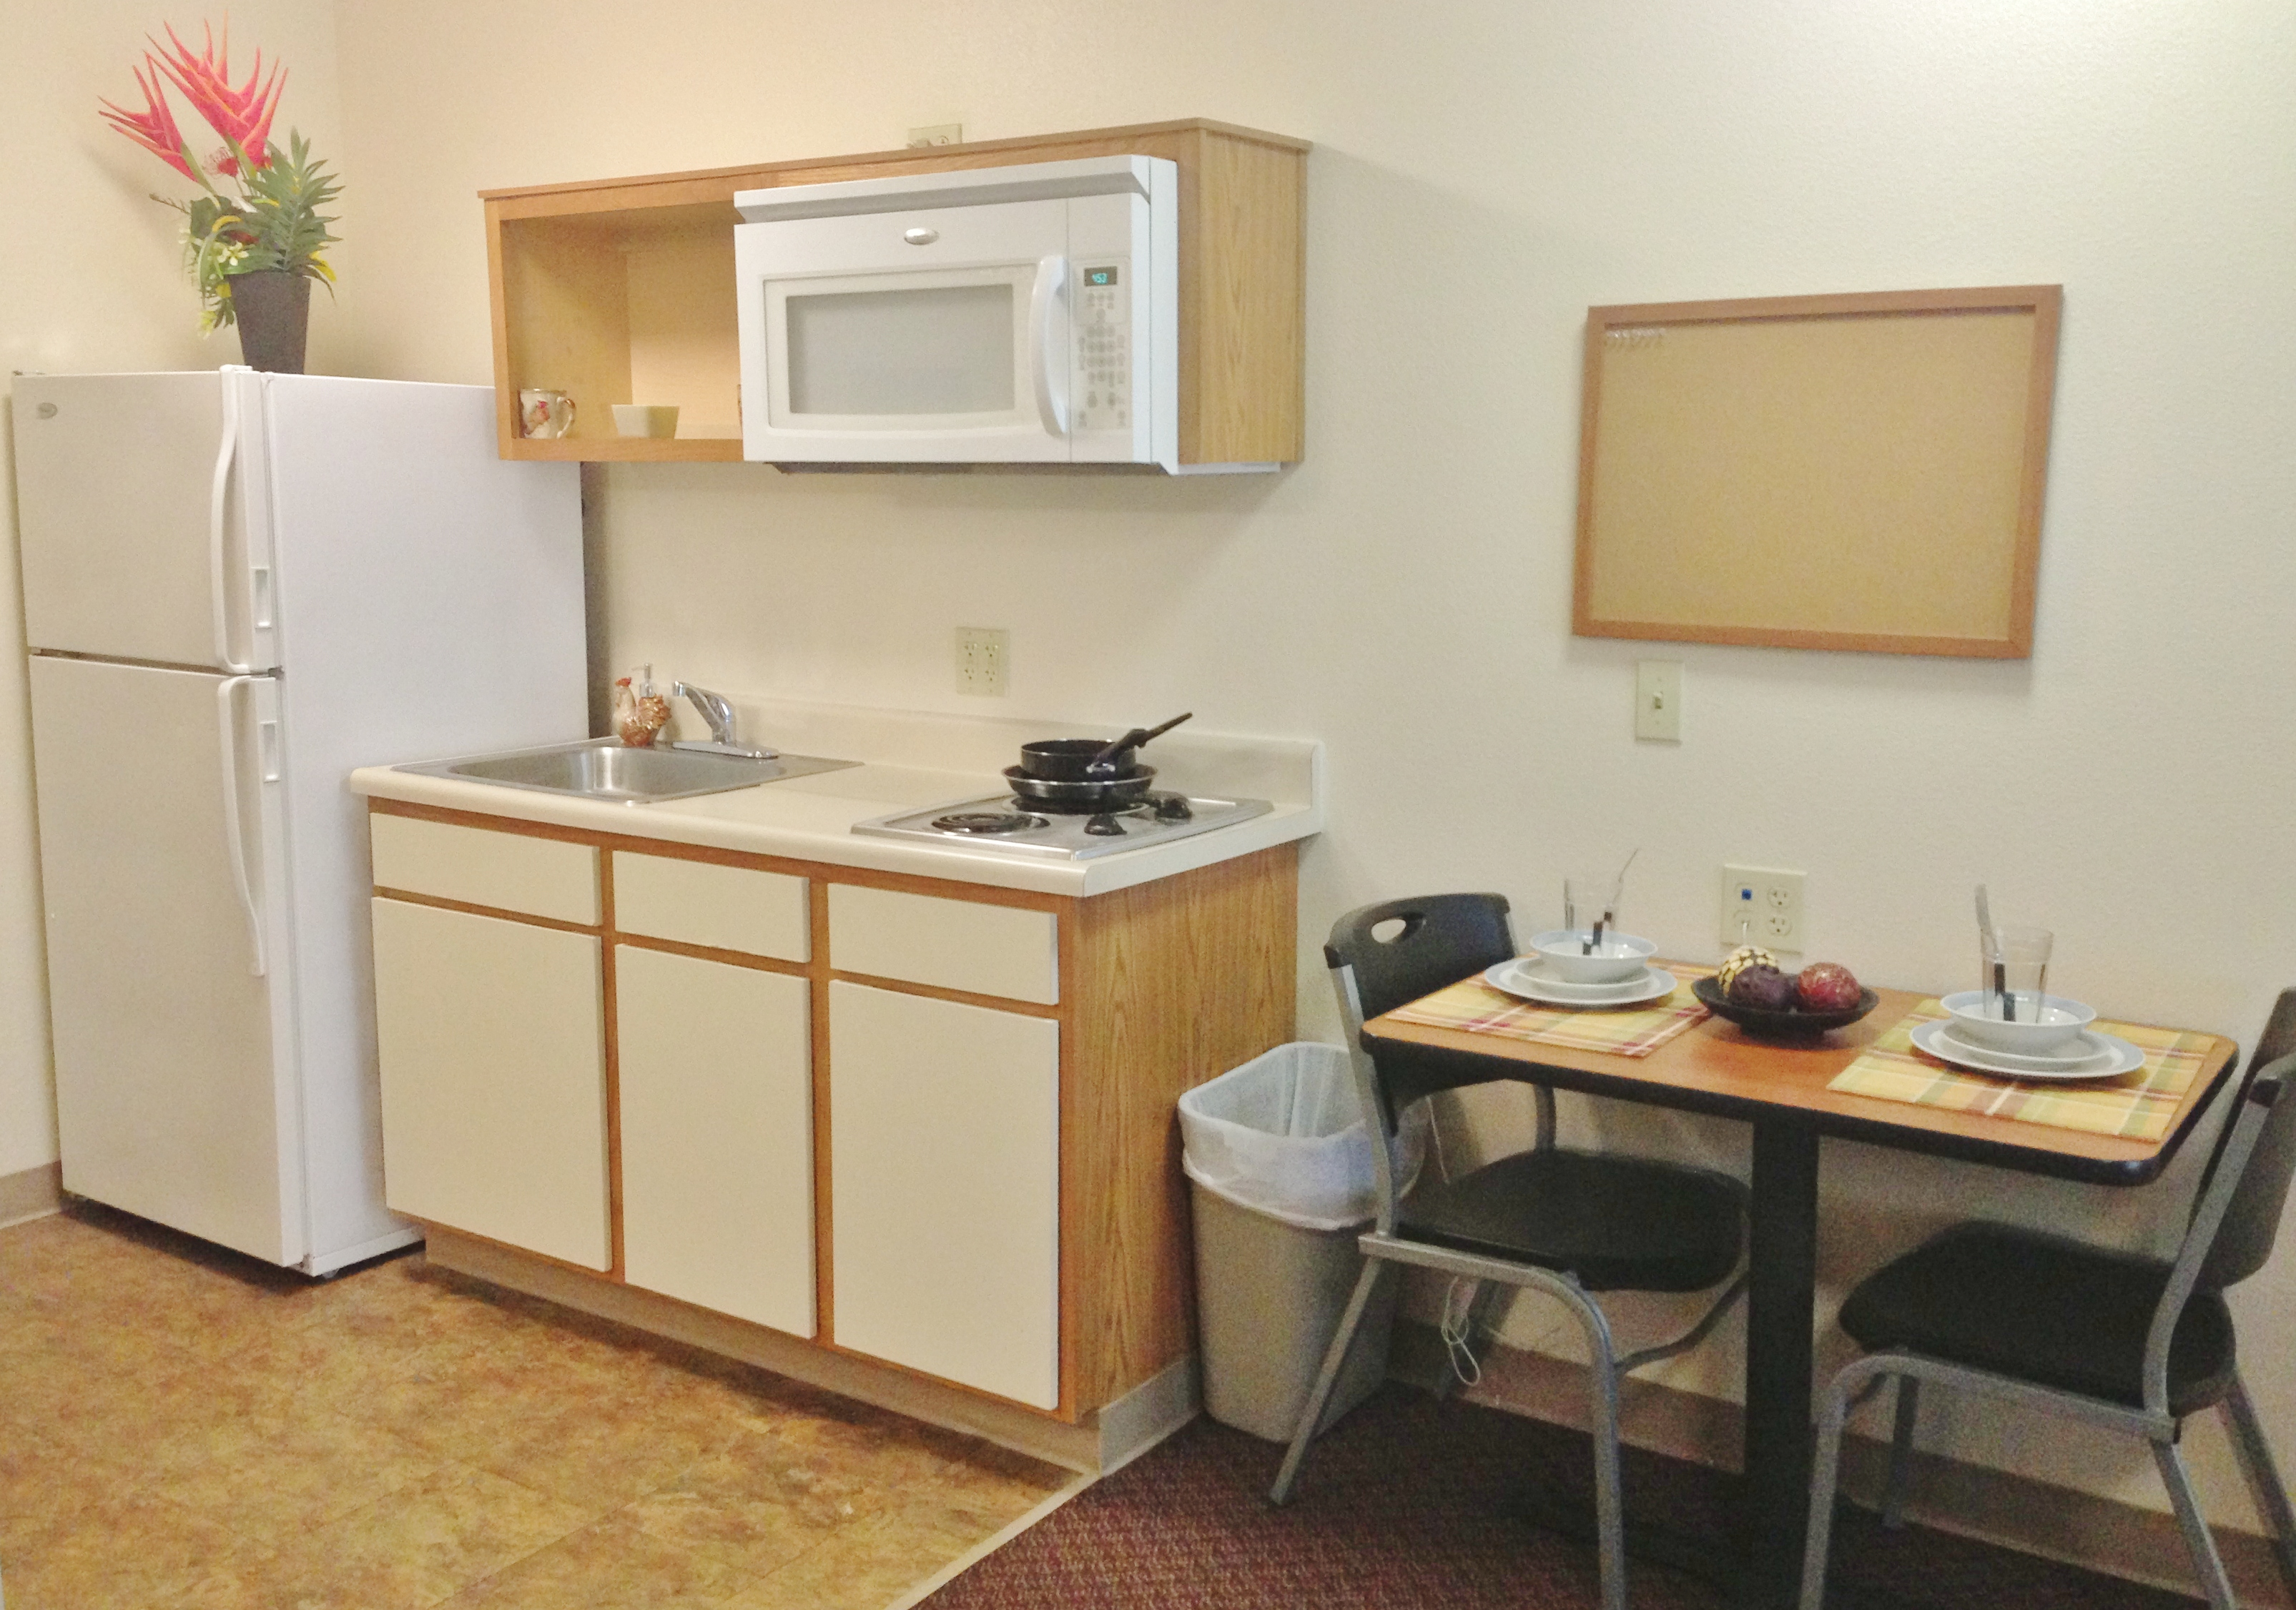 memphis extended stay hotel well inland suites